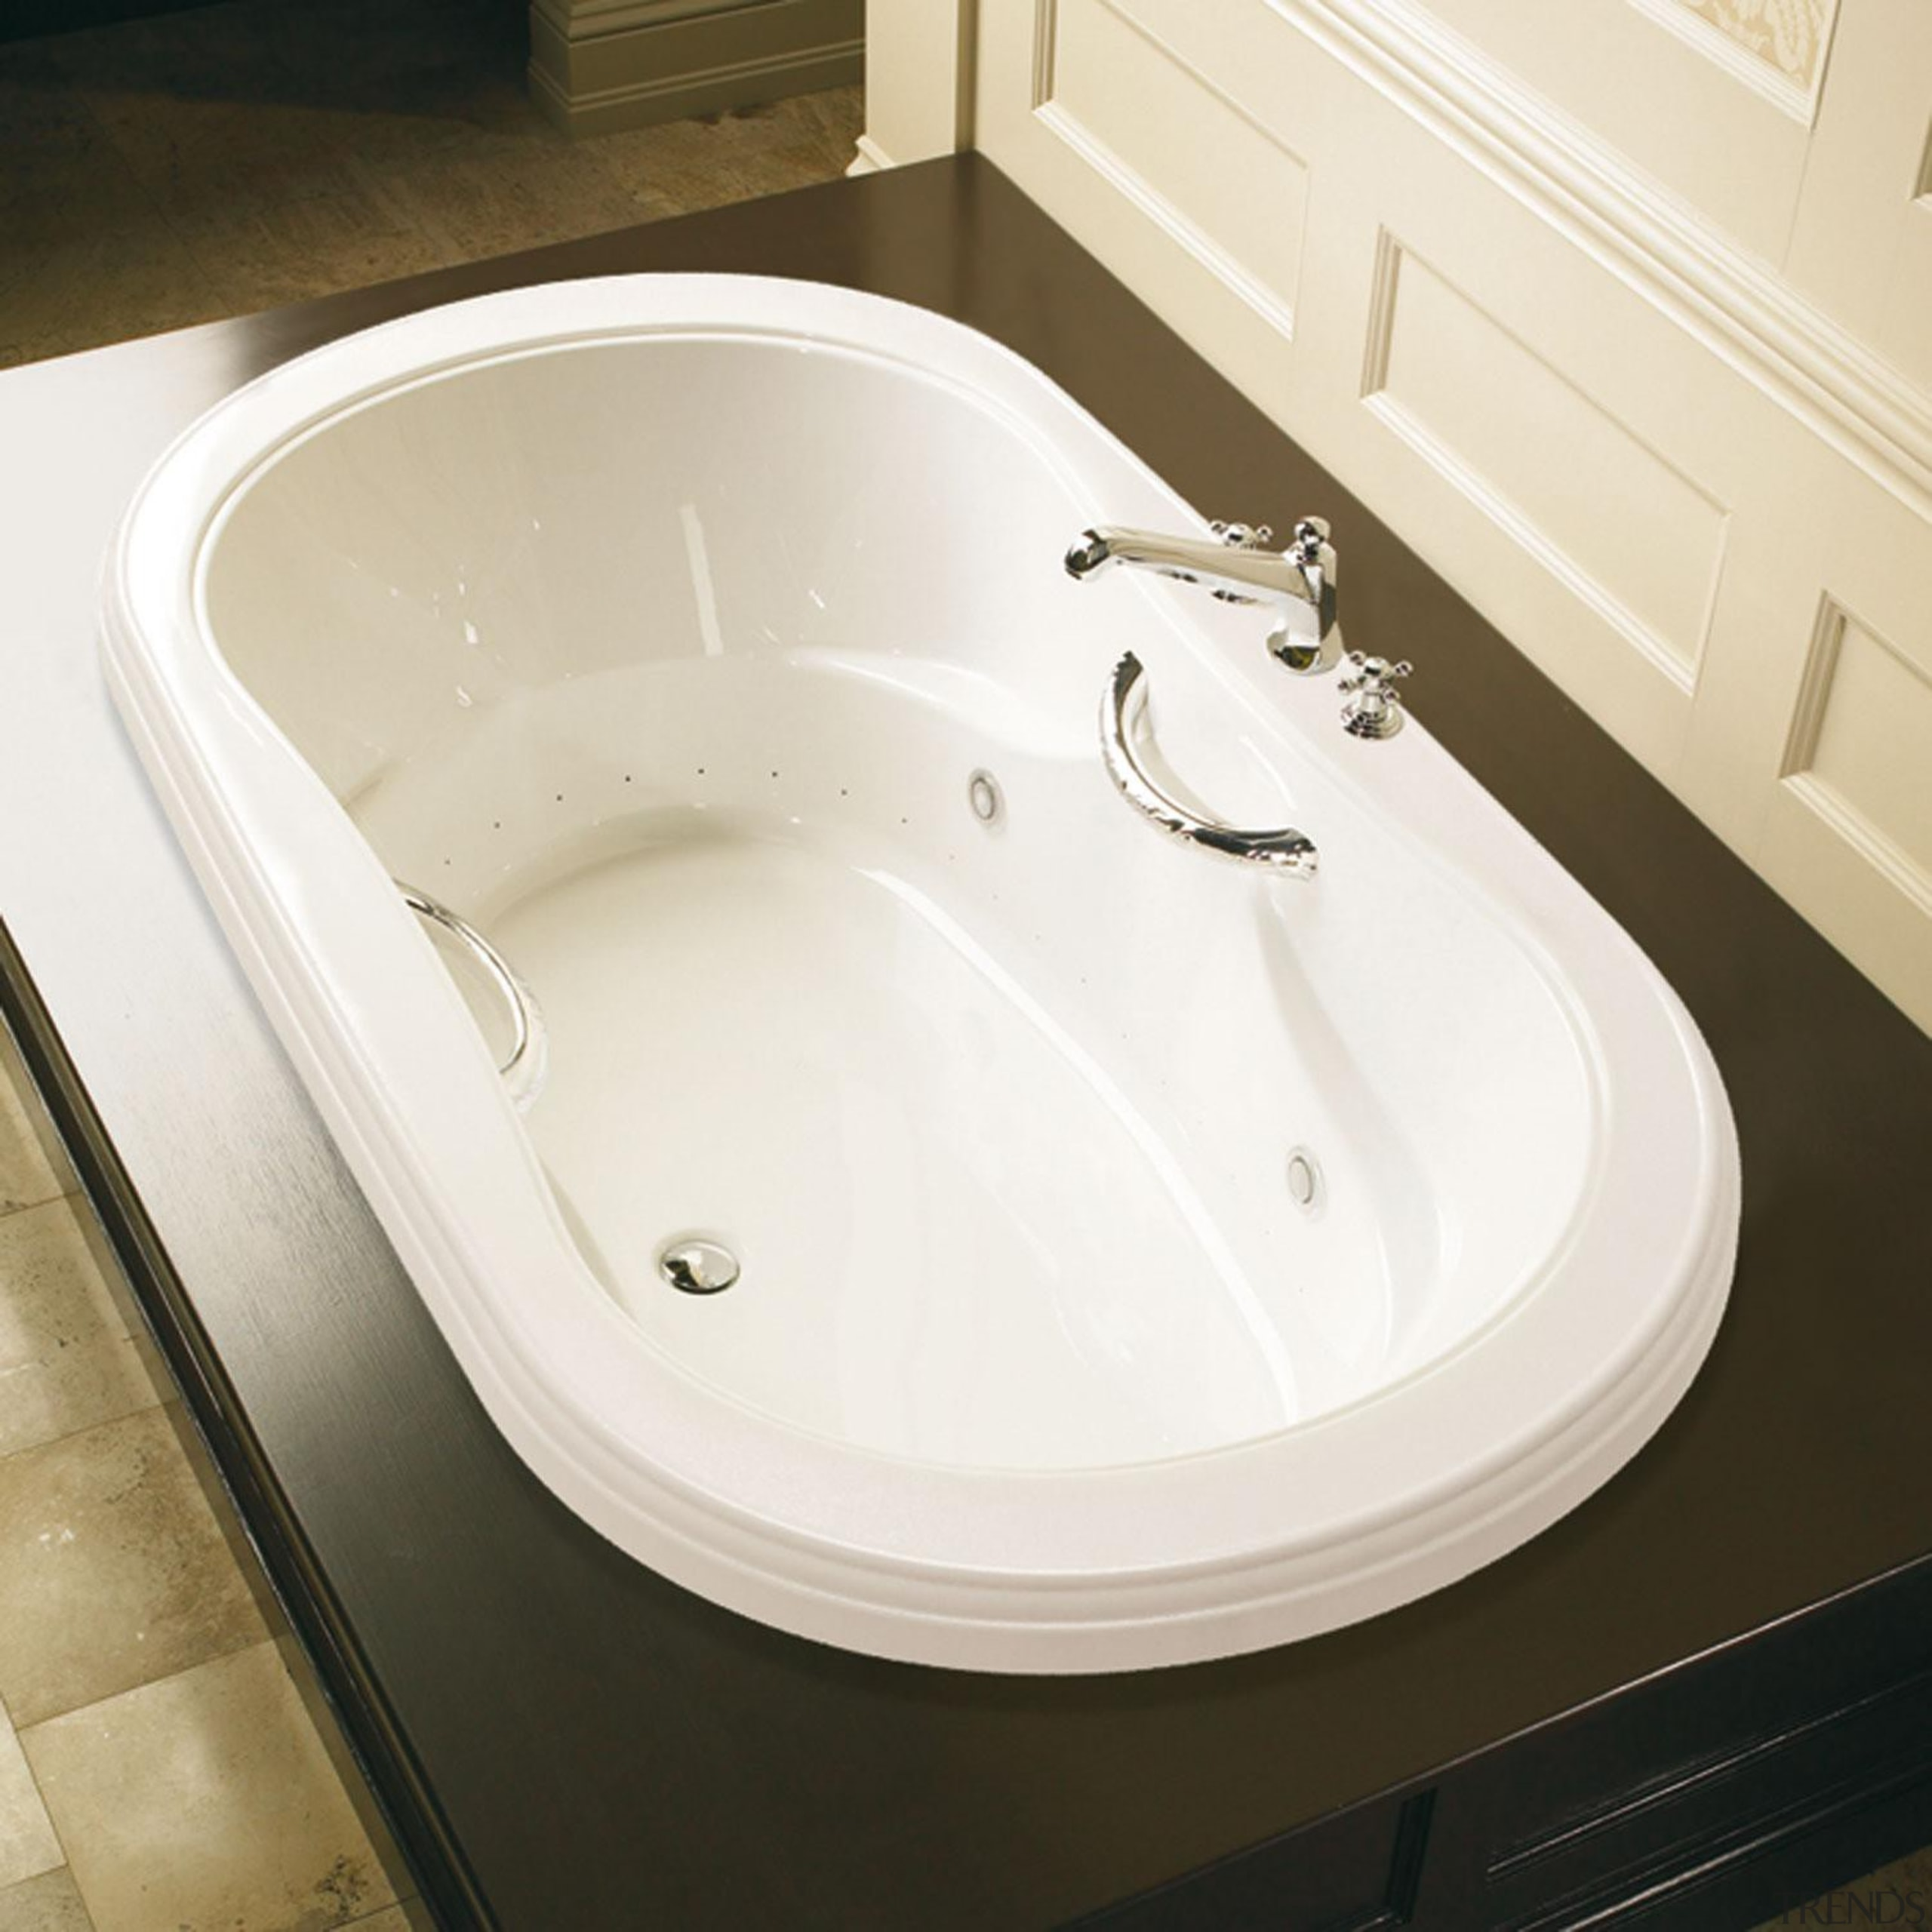 Style and details is what sets apart this angle, bathroom, bathroom sink, bathtub, ceramic, floor, plumbing fixture, product design, sink, tap, toilet seat, white